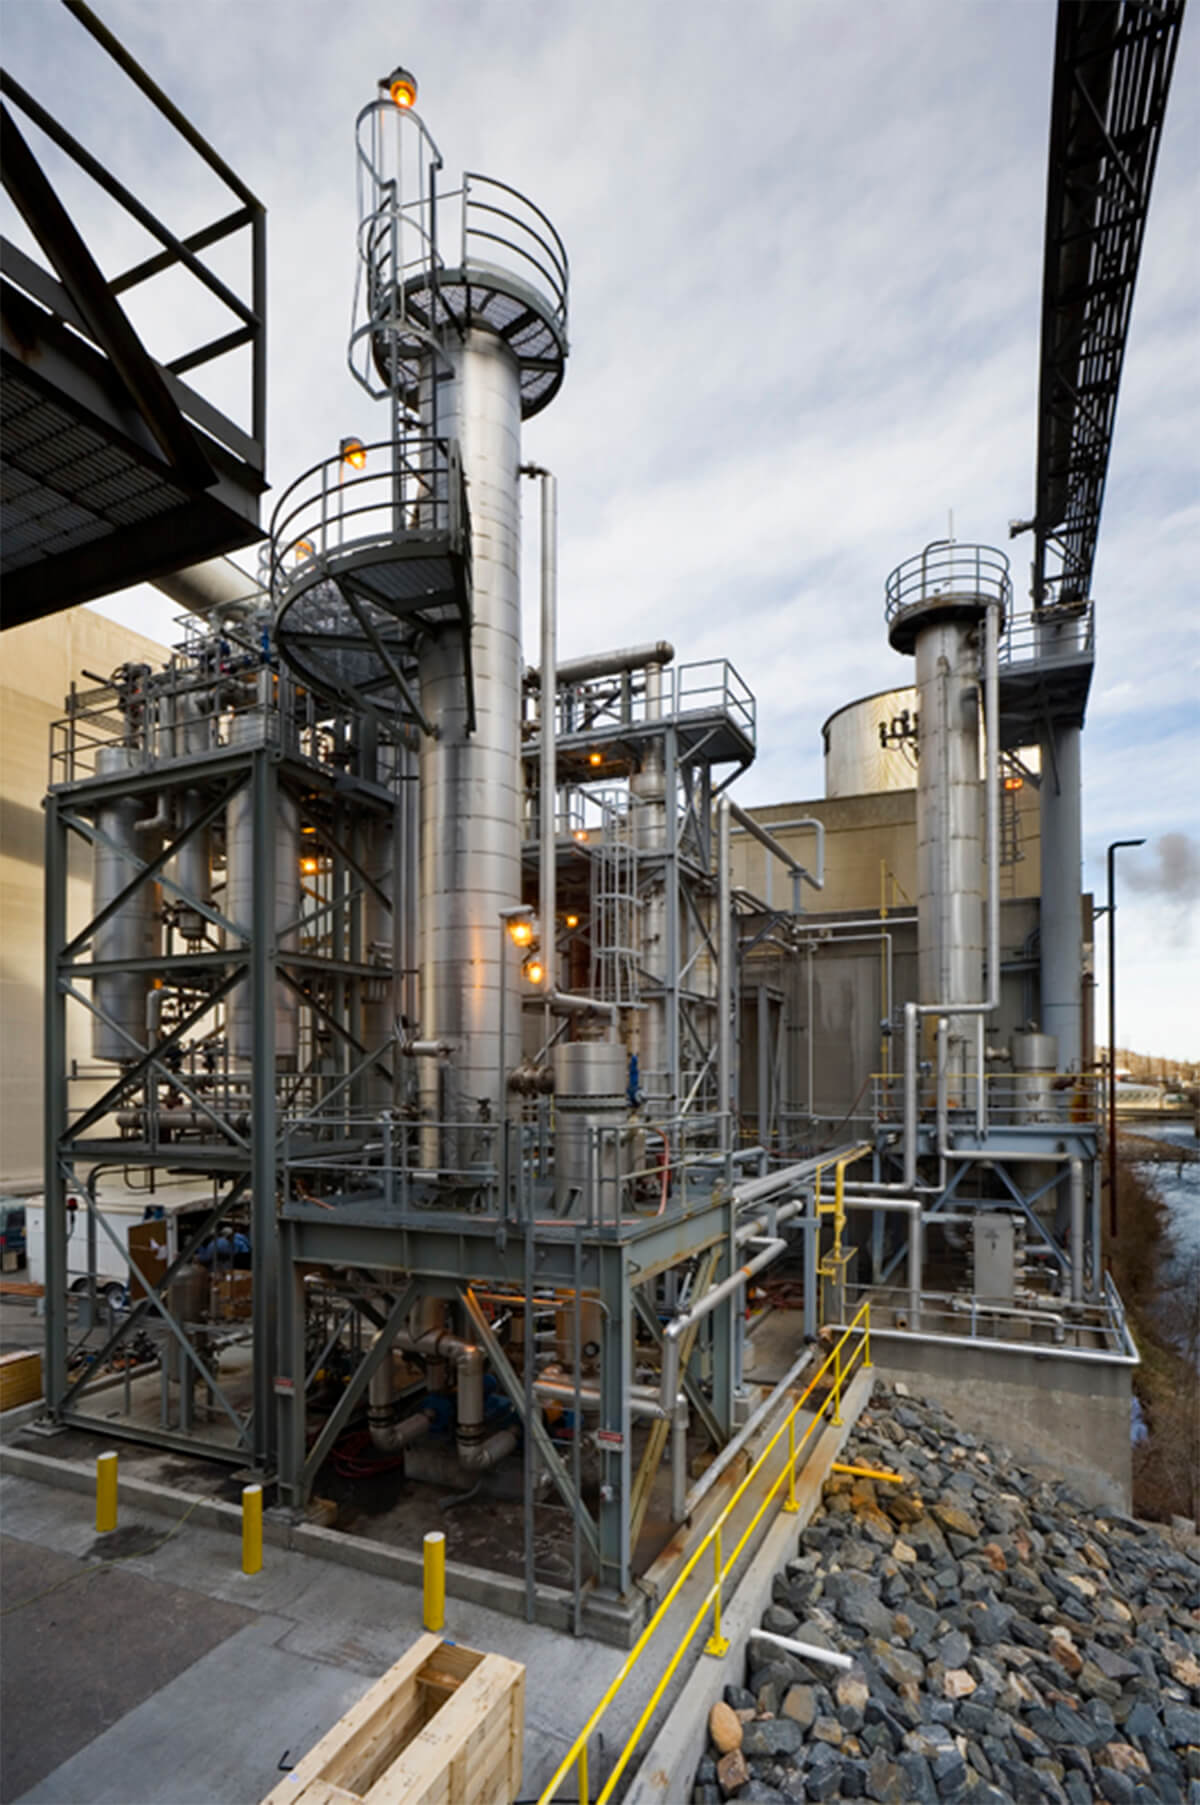 Merrick Ethanol plant at Coors, Golden, Colorado